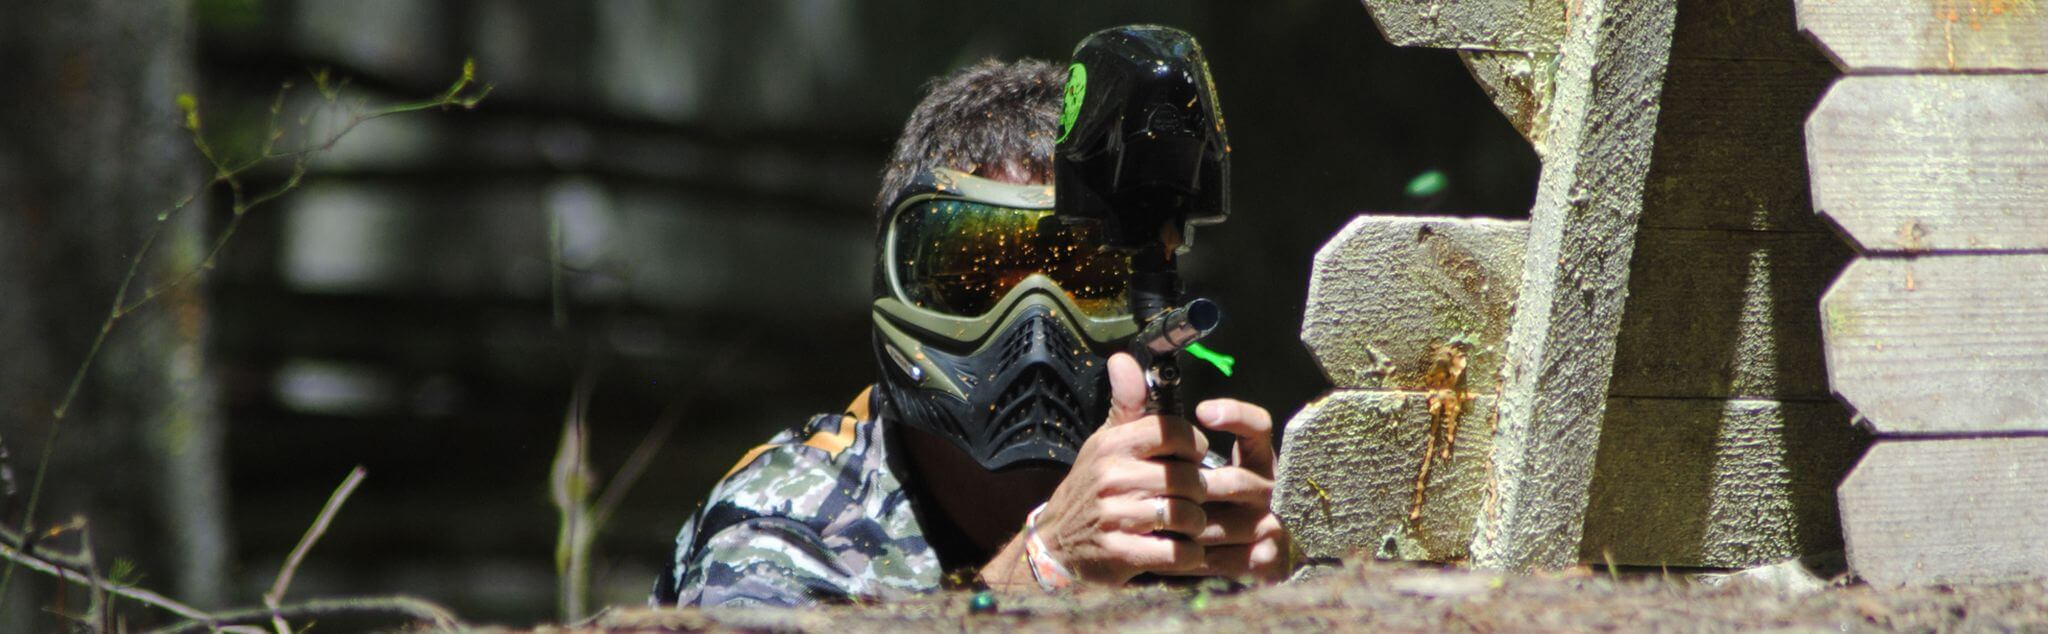 Paintball in Noja